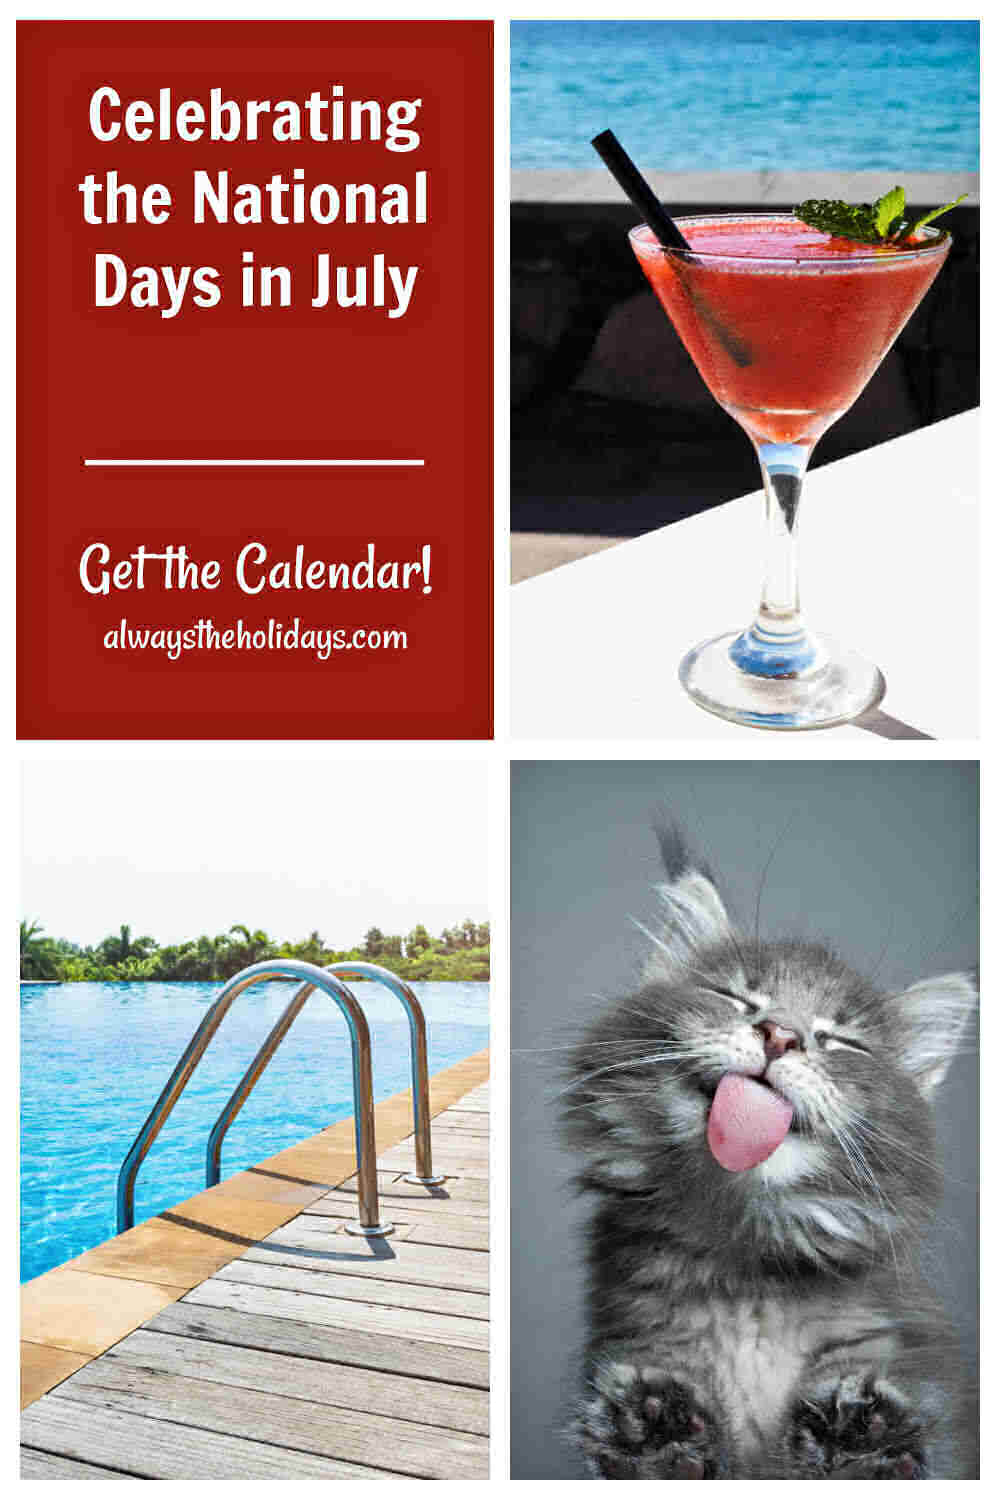 Daiquiri, swimming pool and cat with tongue out and words Celebrating the National Days in July - Get the calendar.